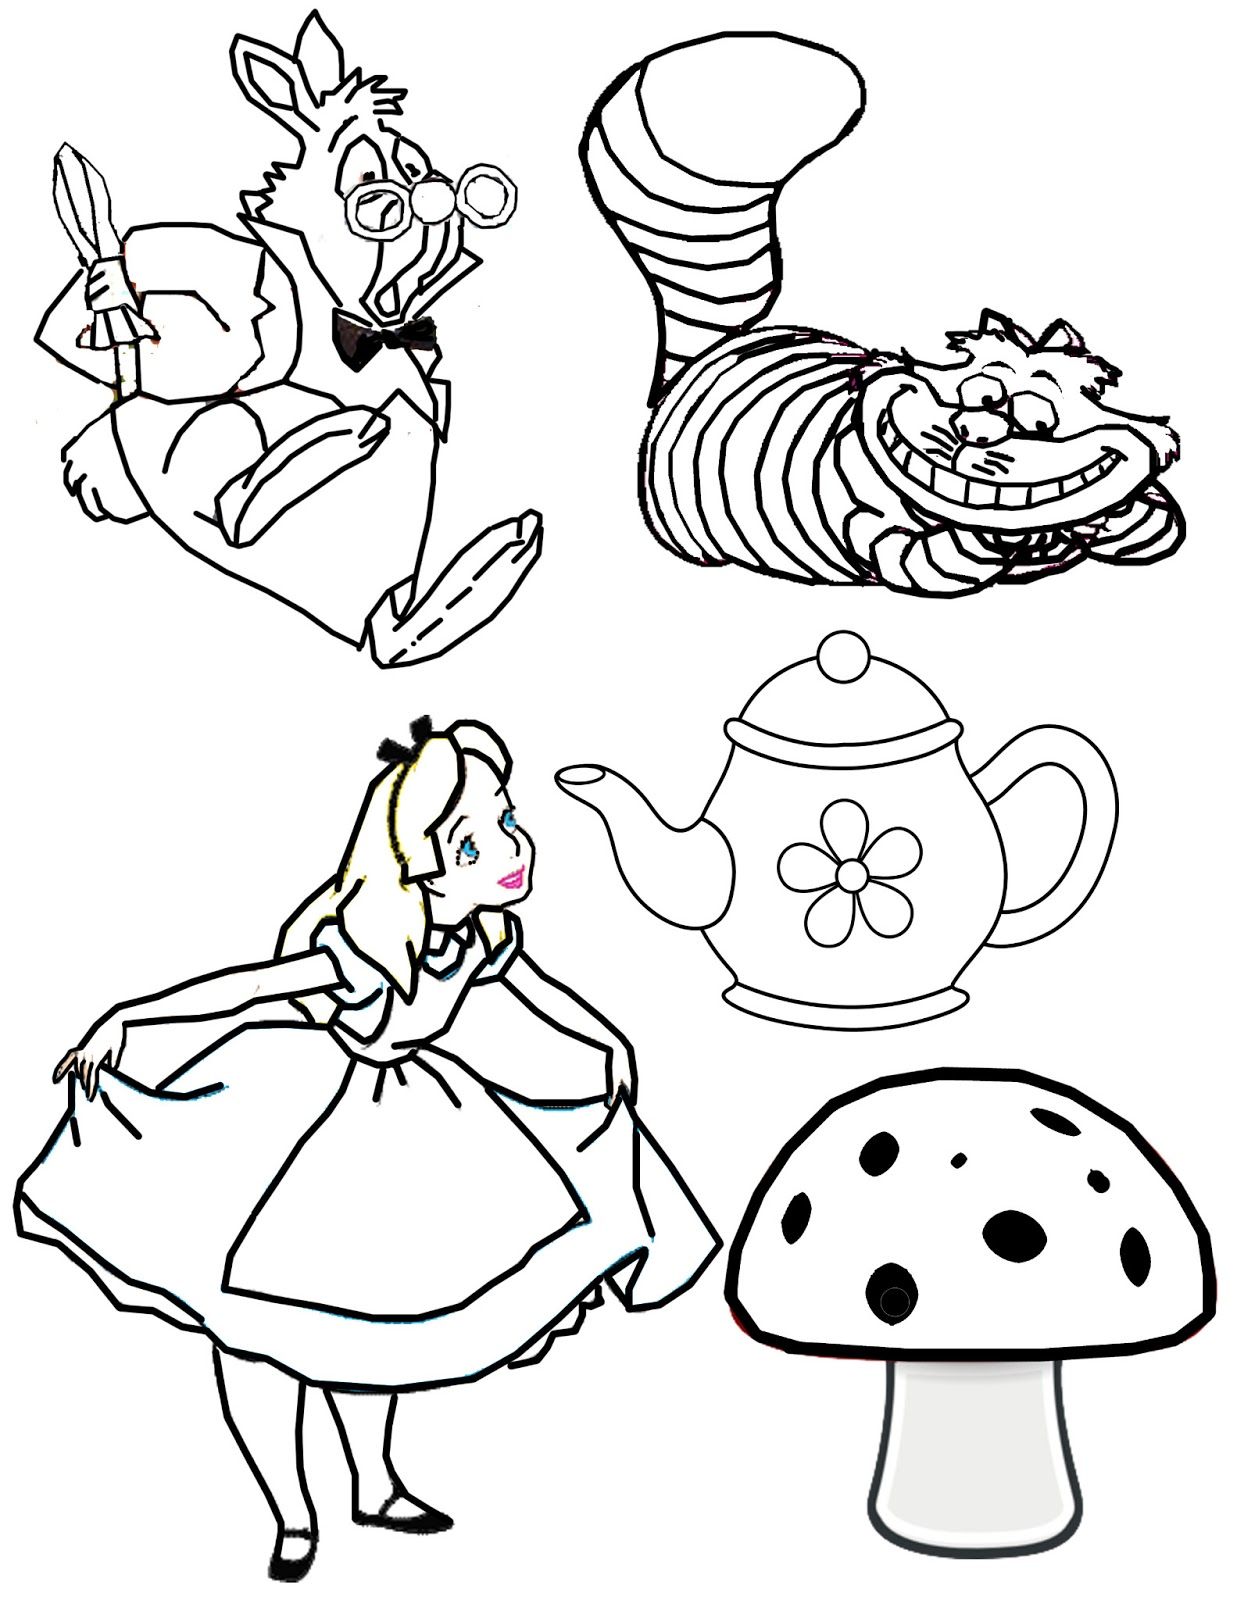 Outside The Box Mad Hatter S Tea Party On The 125 Day Of